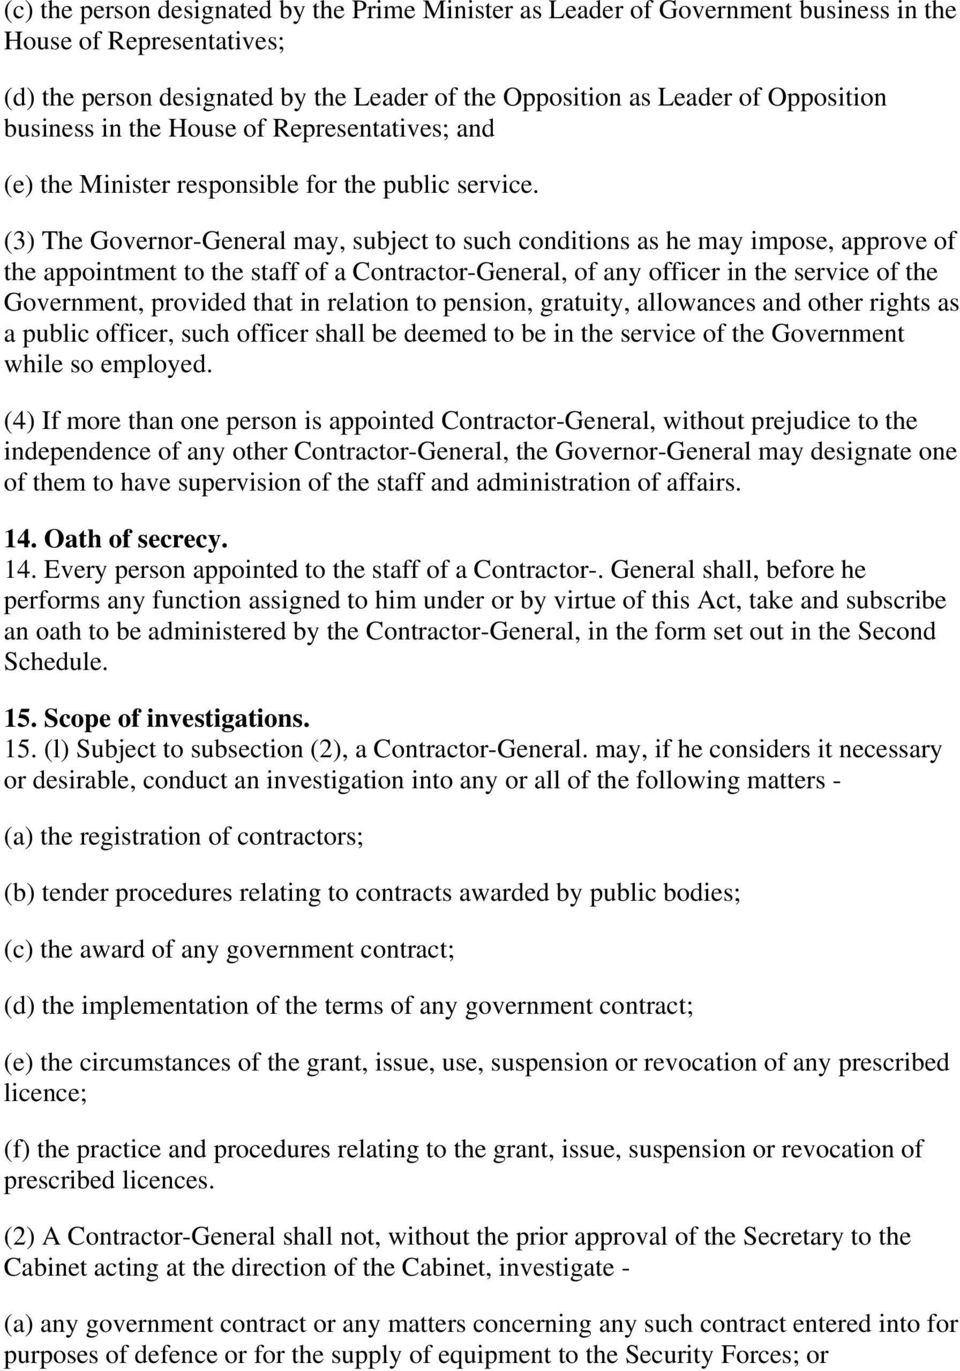 (3) The Governor-General may, subject to such conditions as he may impose, approve of the appointment to the staff of a Contractor-General, of any officer in the service of the Government, provided